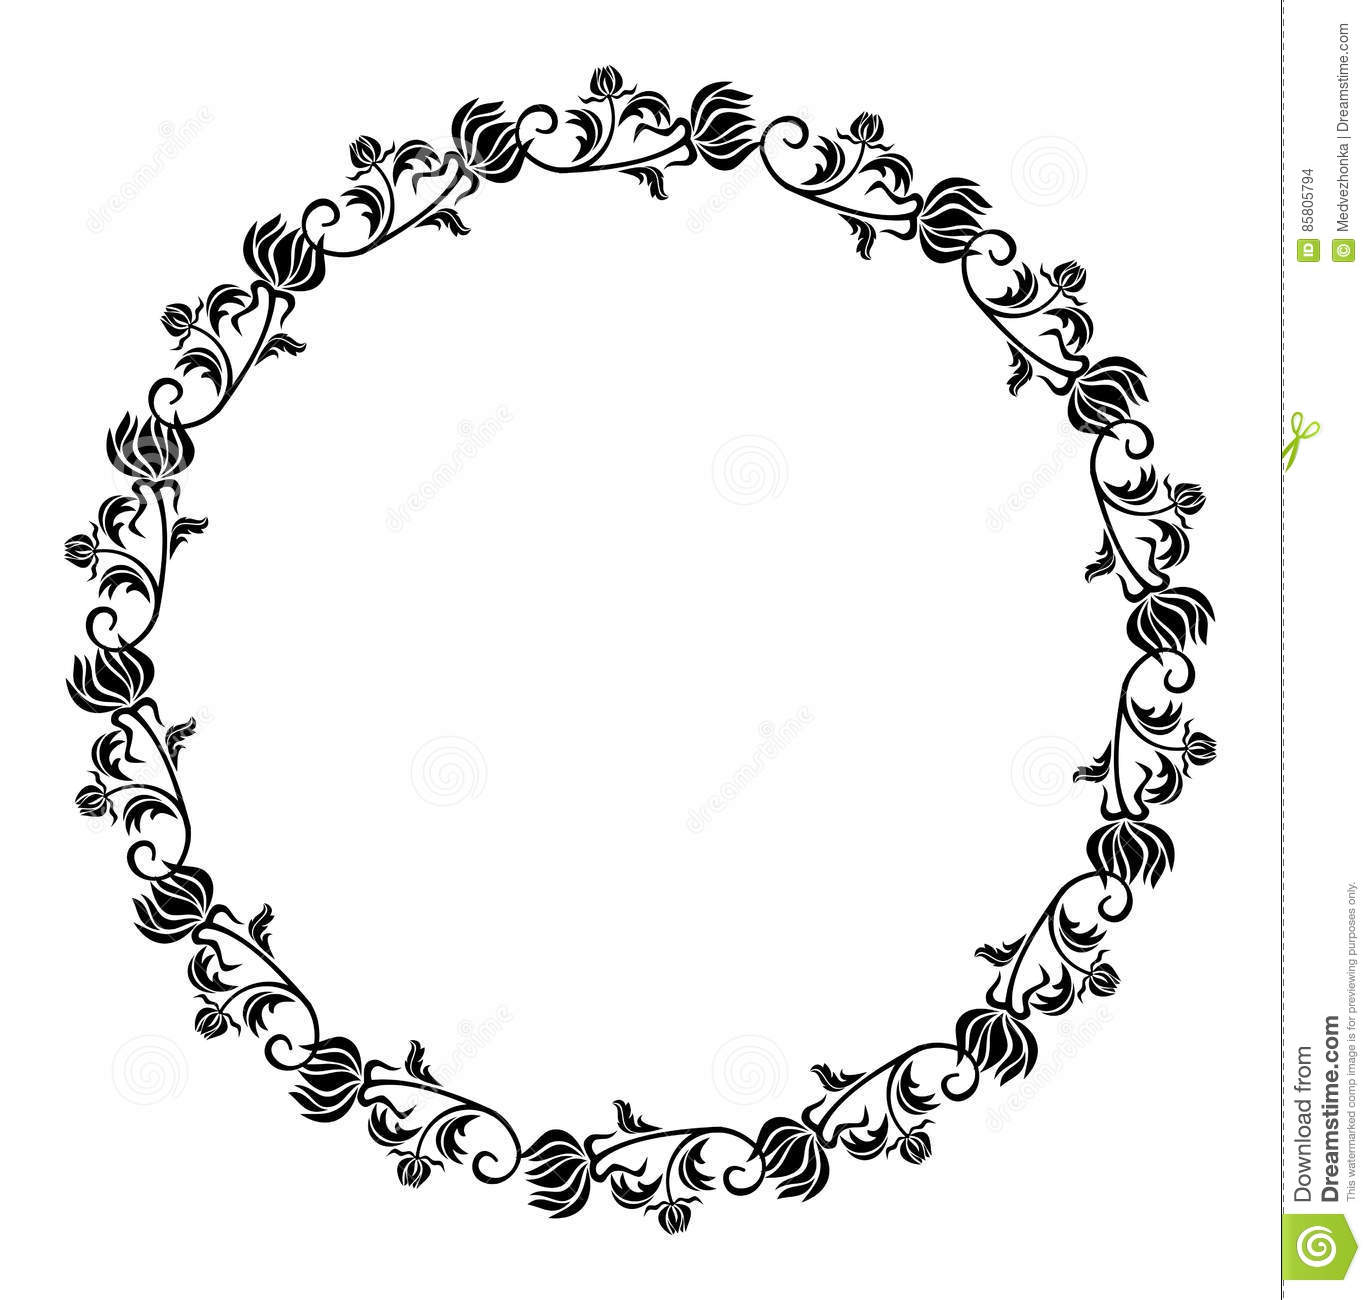 Black Flower Round Up: Black And White Round Frame With Flowers Silhouettes